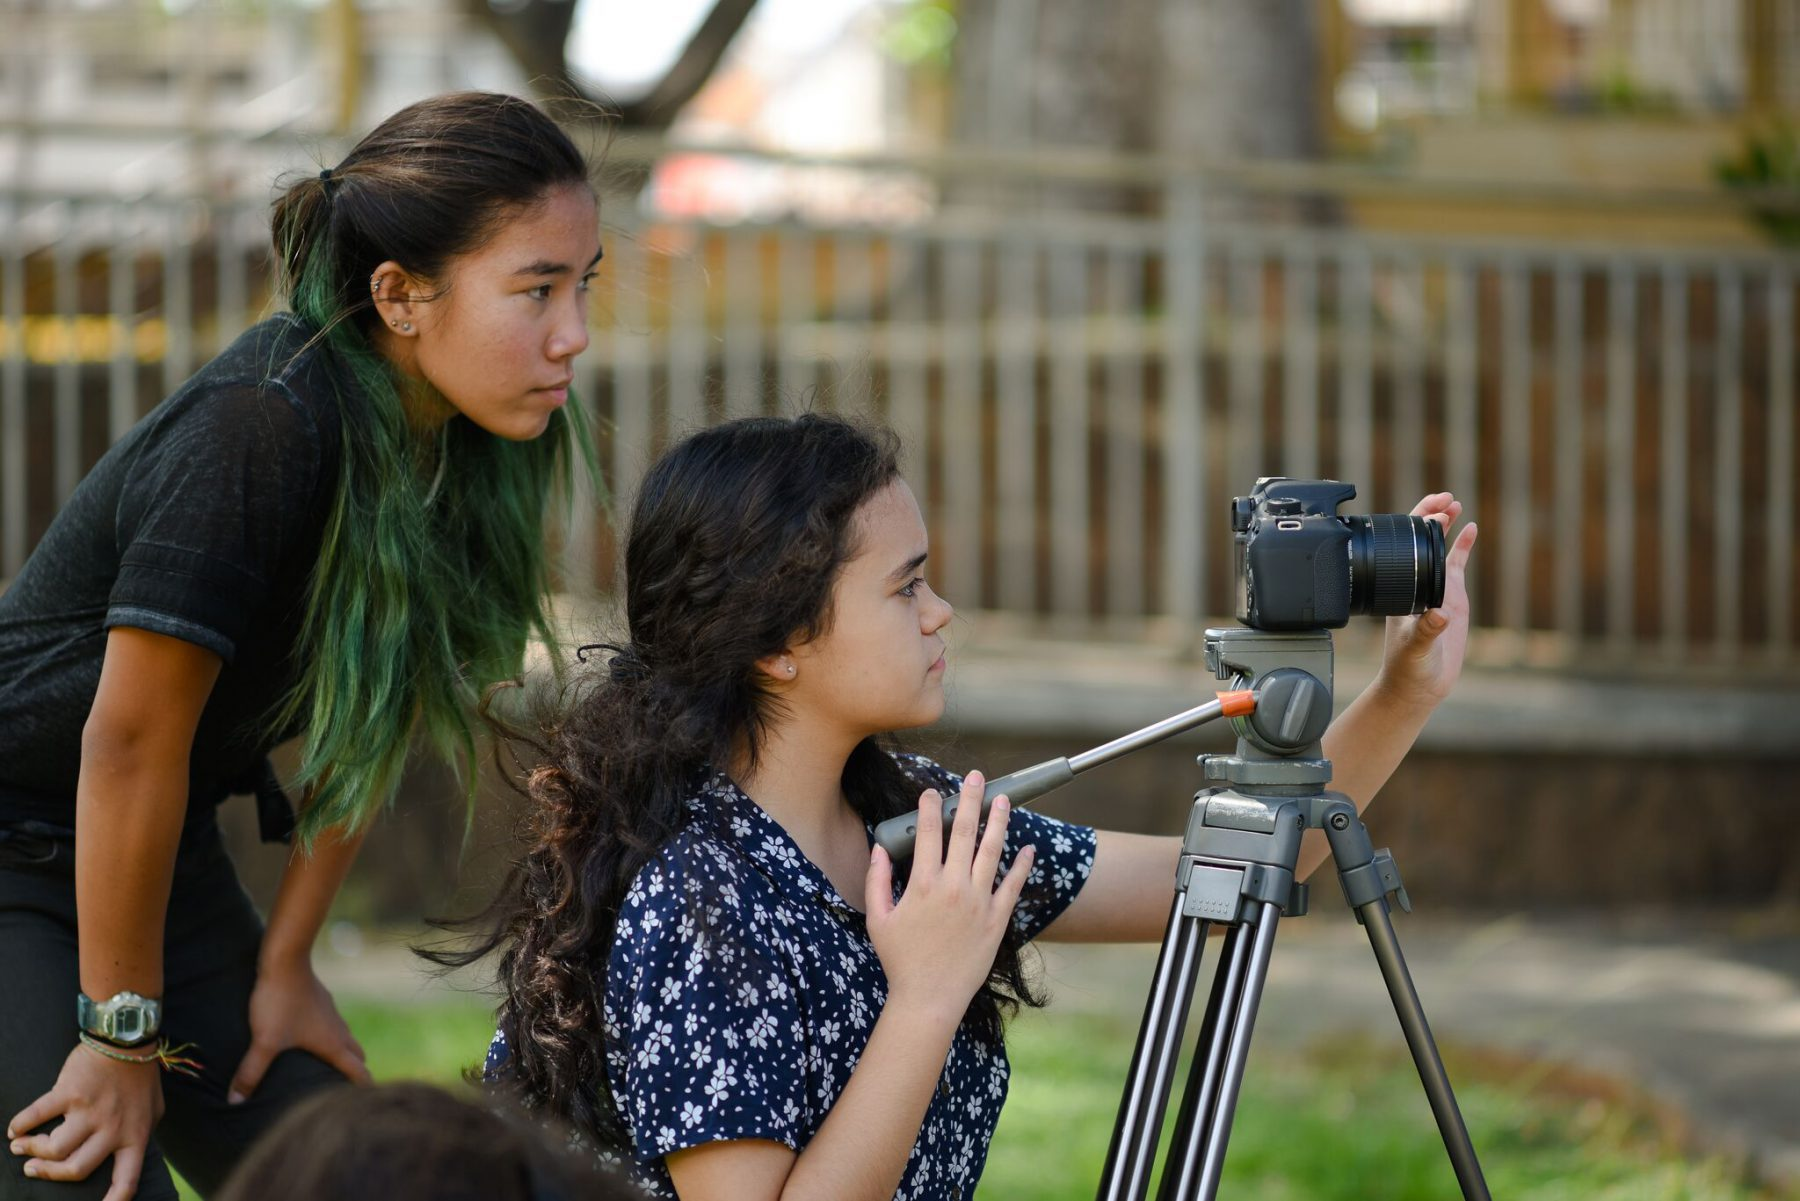 Young women adjusting and using video camera equipment.